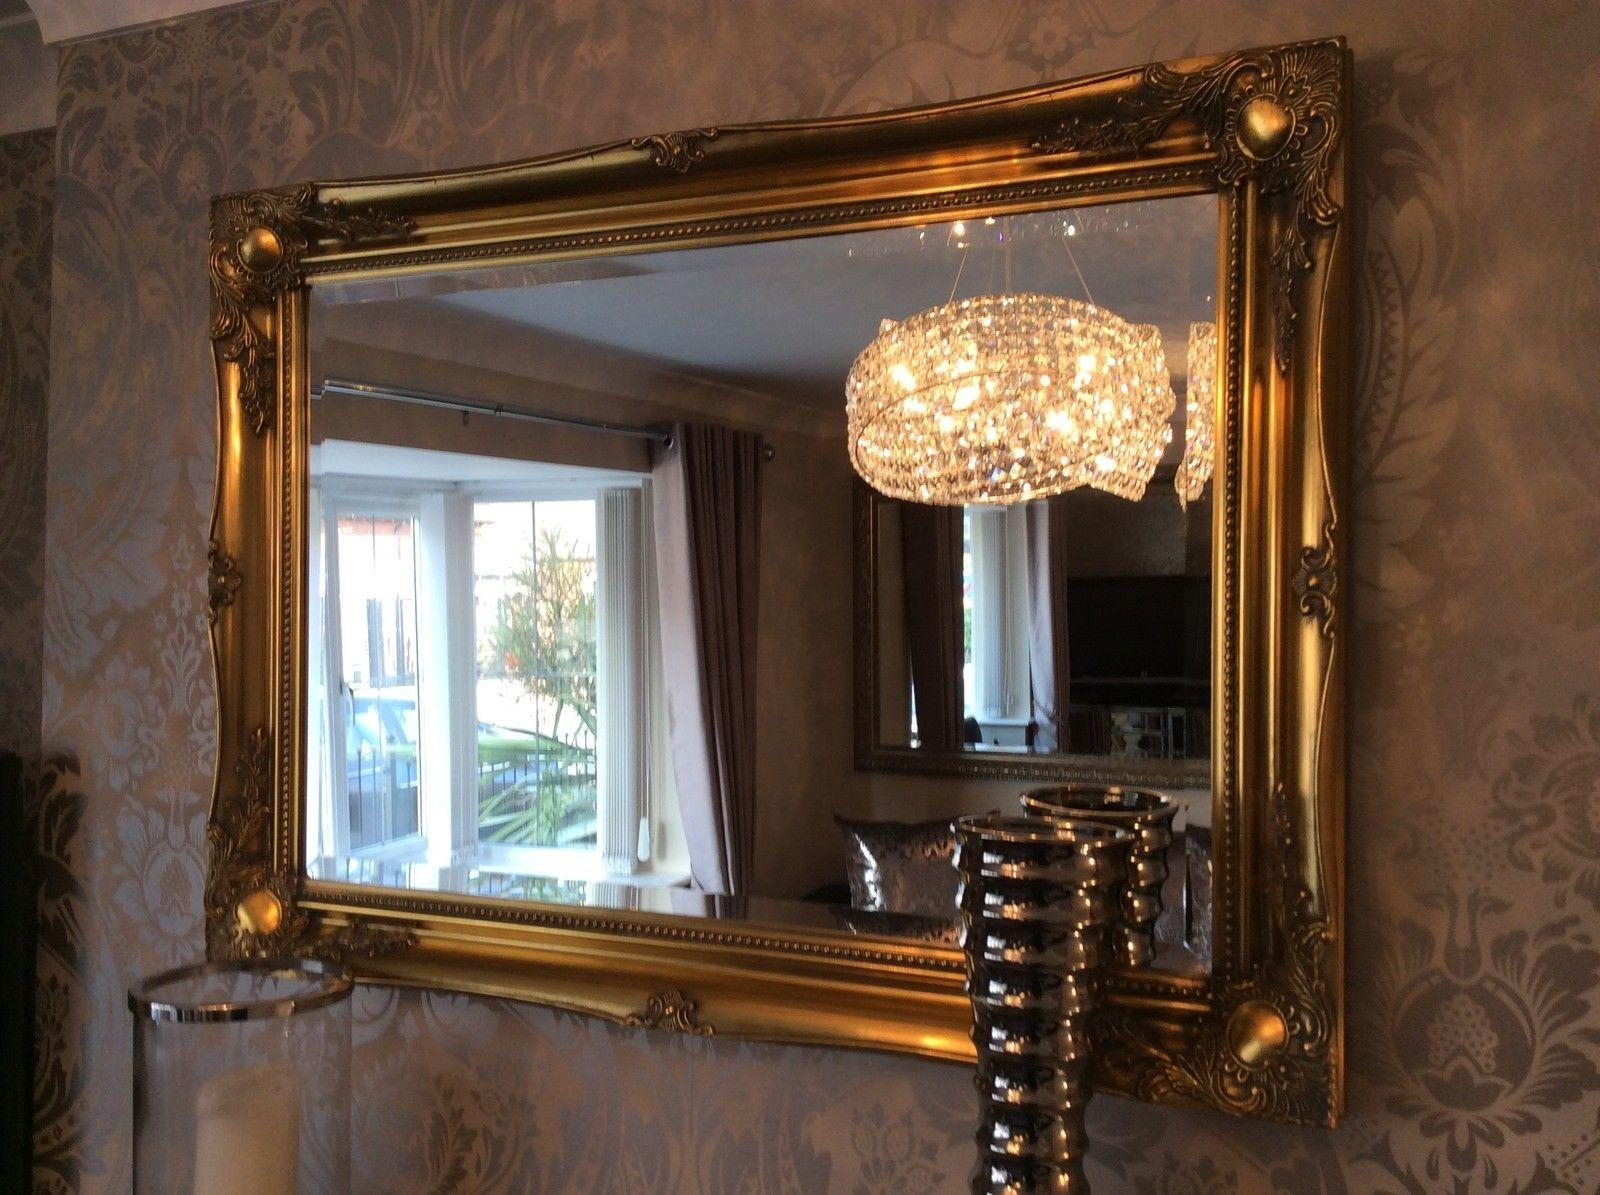 Download Decorative Gold Mirrors | Gen4Congress With Regard To Gold Mirrors For Sale (Image 9 of 20)